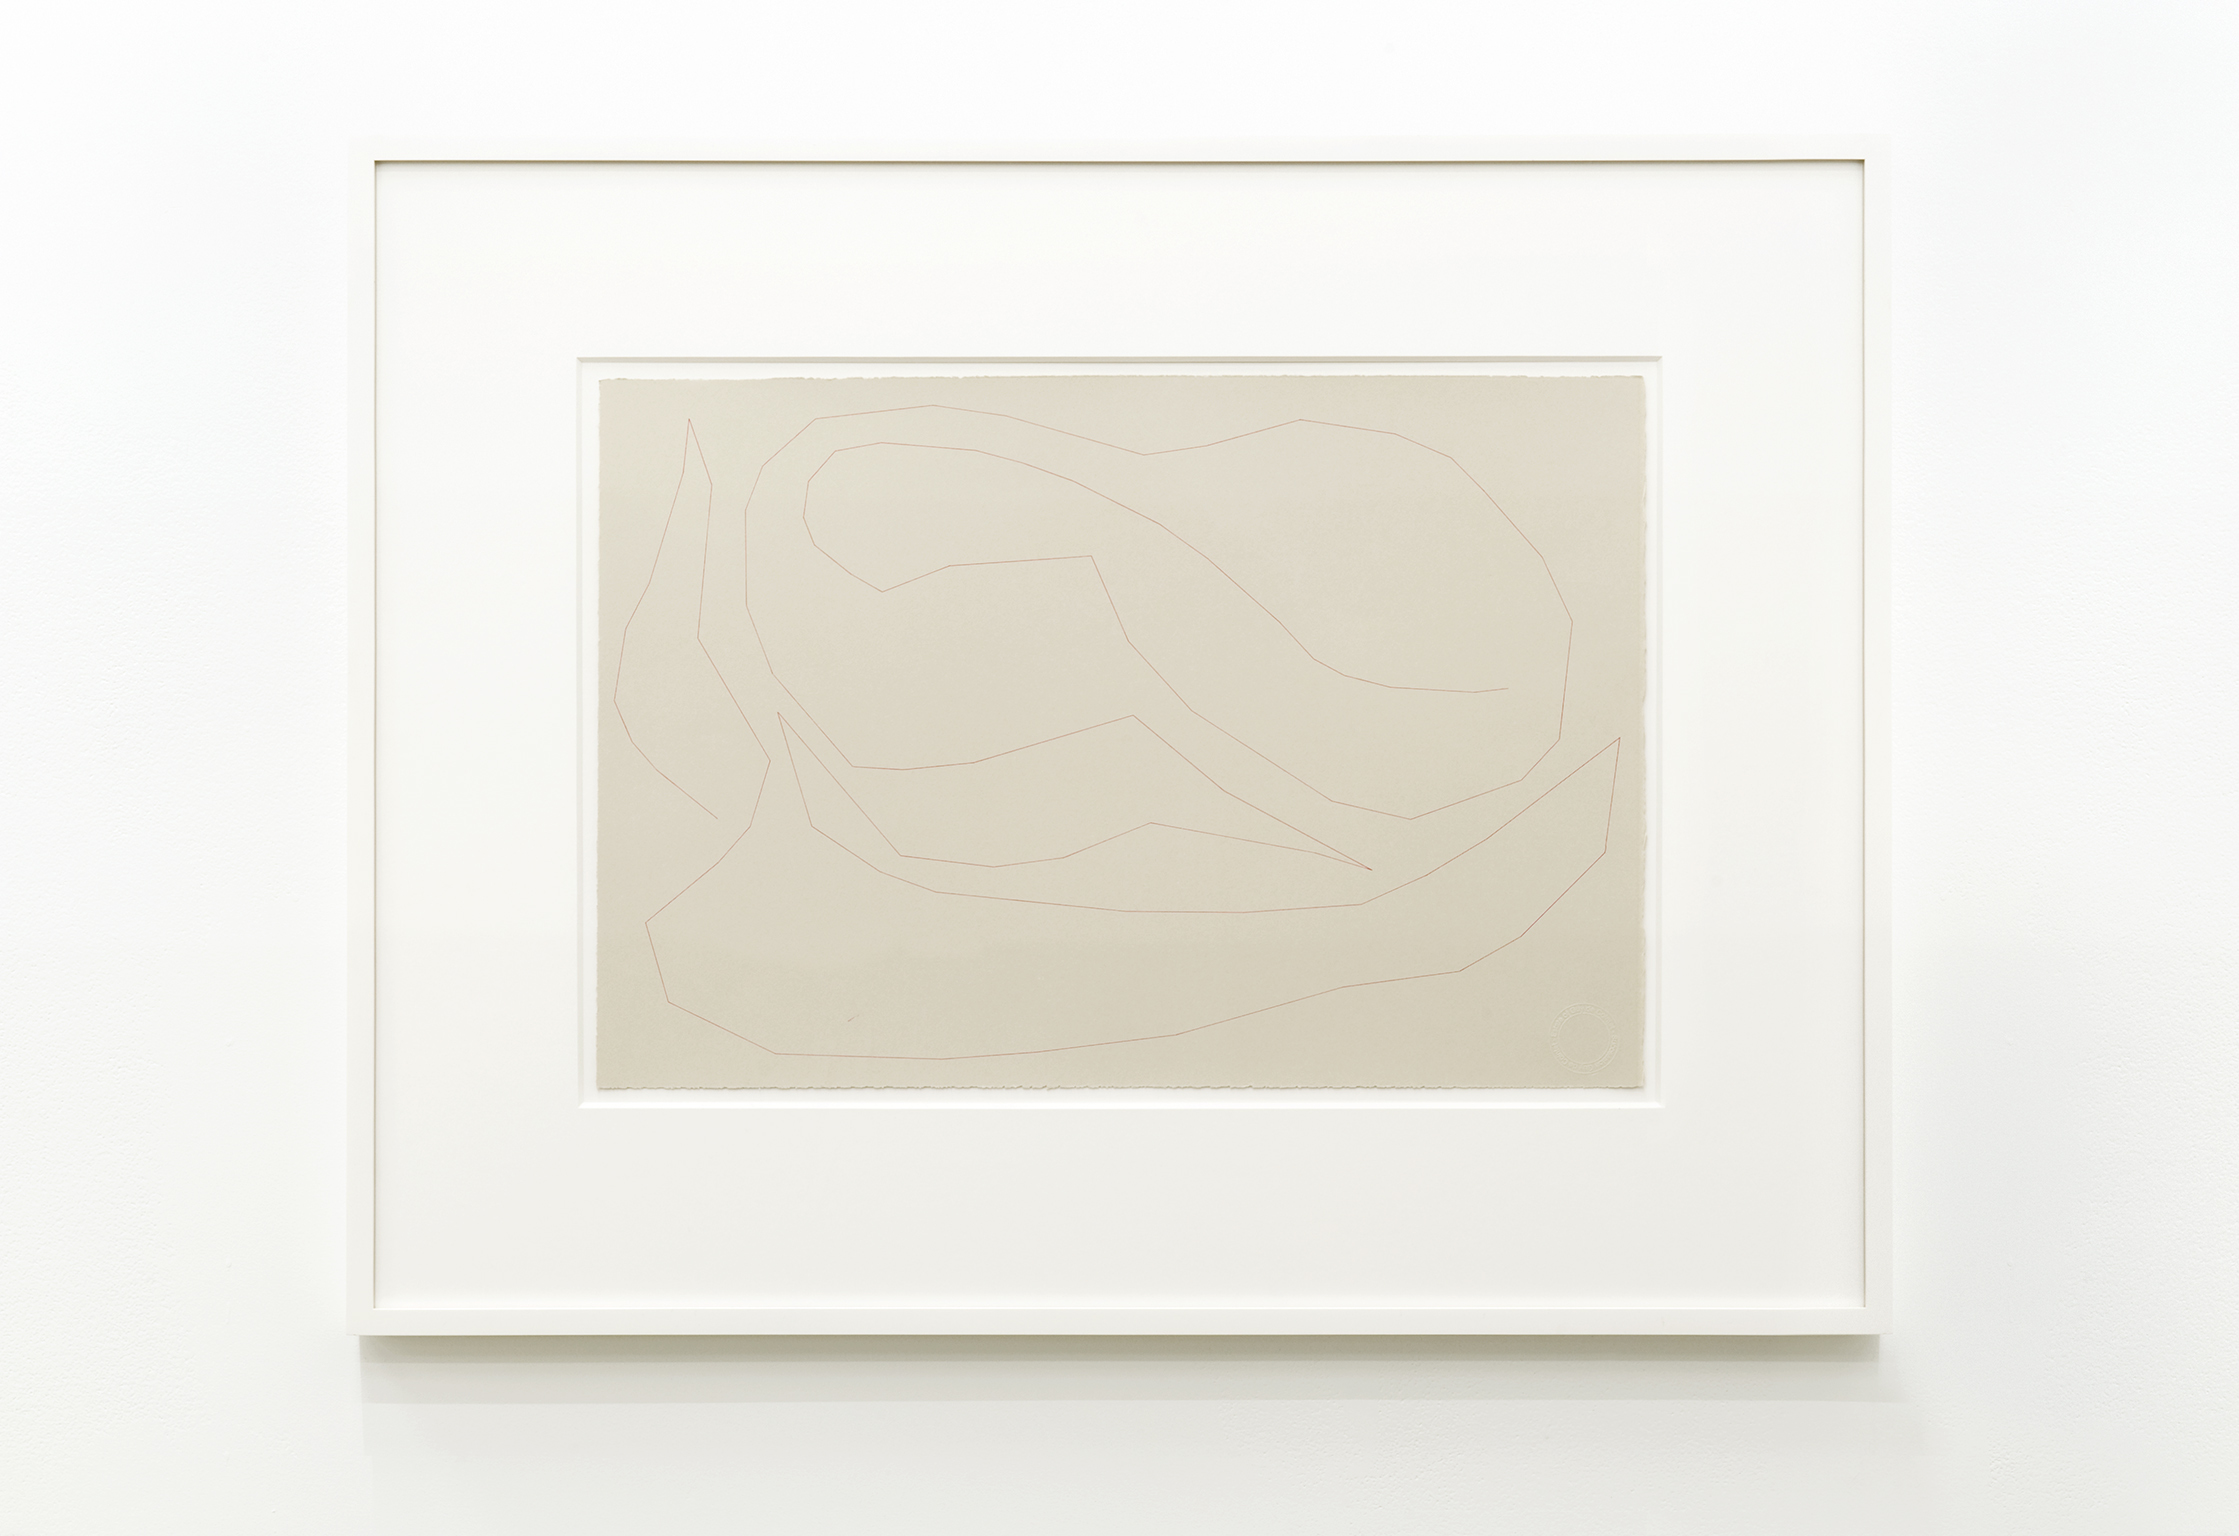 Guy de Cointet, Untitled, c. 1982, ink on paper, 15 x 22 in. (38 x 56 cm) by